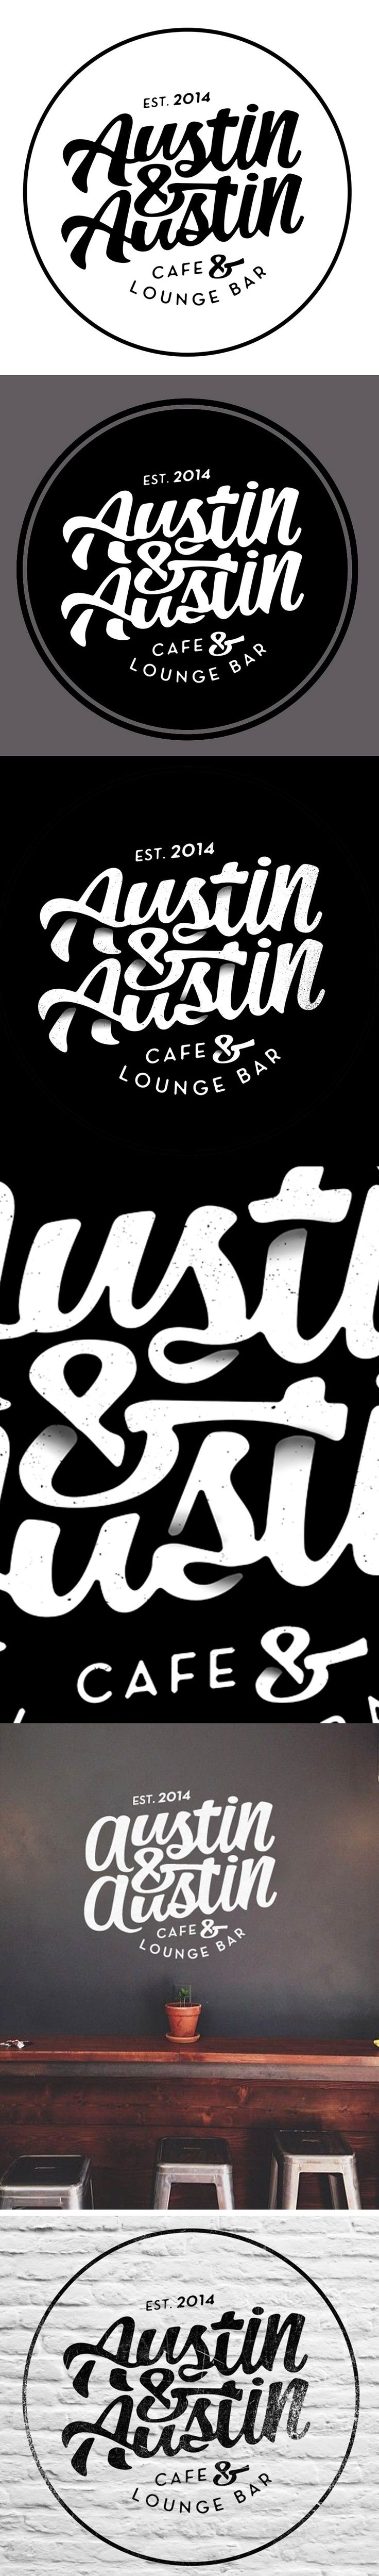 Logotype for Austin & Austin Cafe & Lounge Bar Alex Ramon Mas Design #Logos #Brand #Restaurant